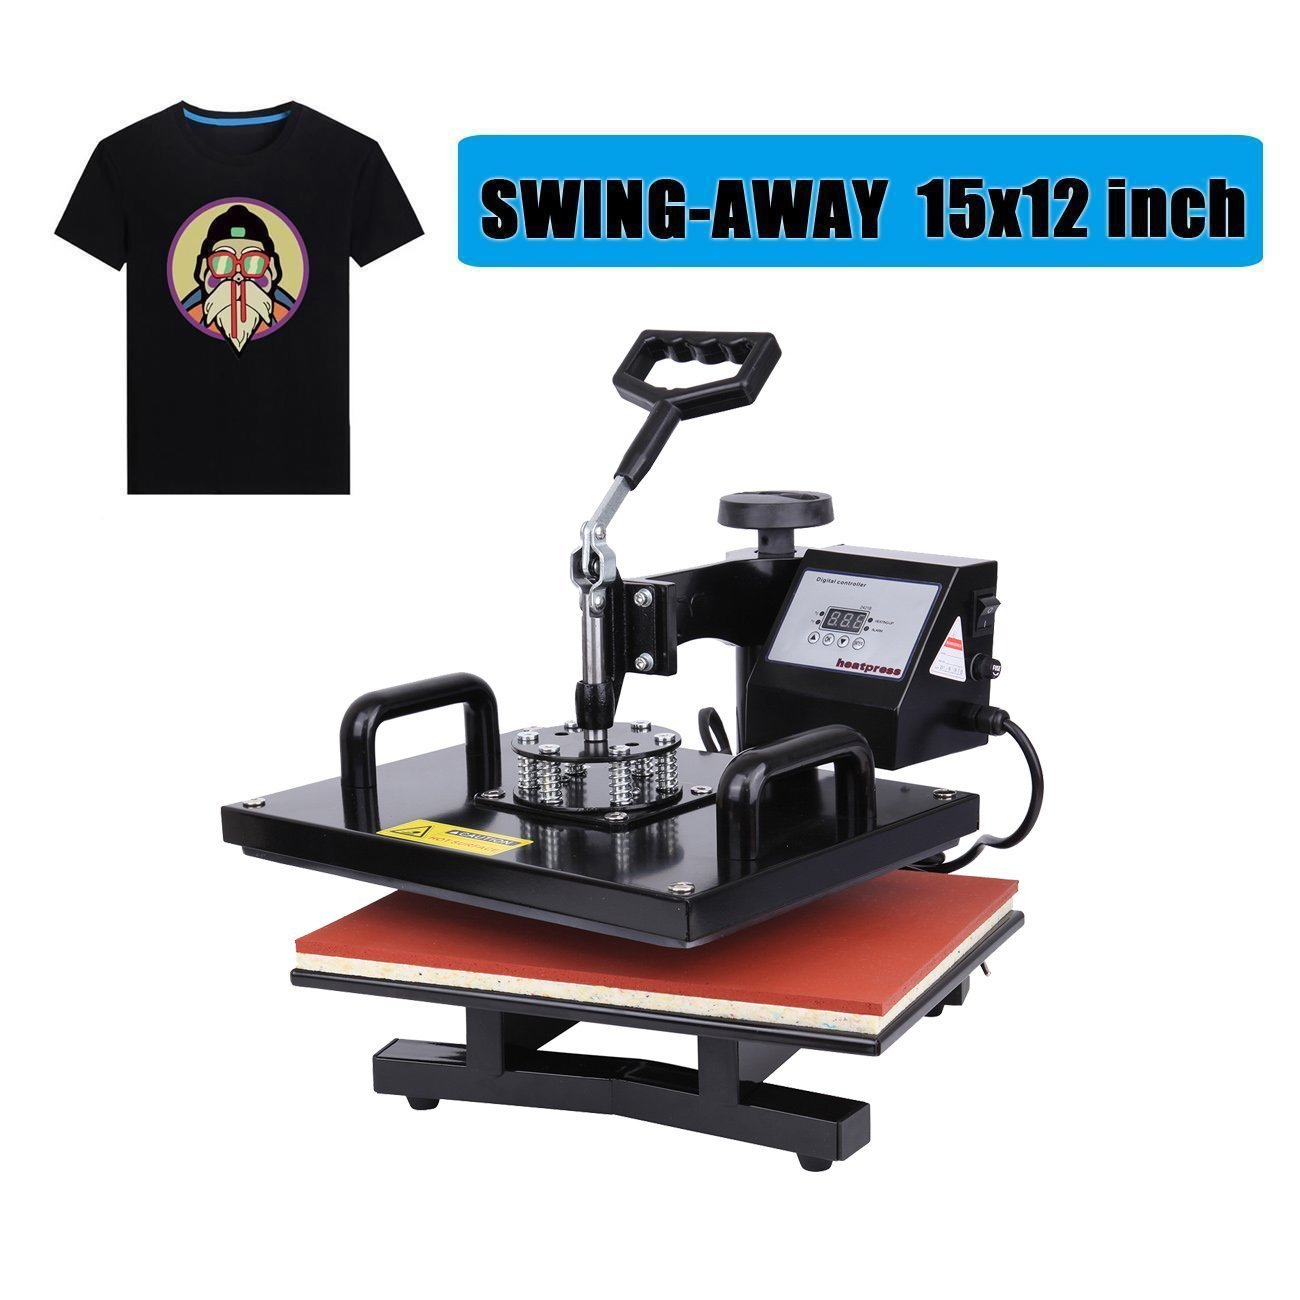 Ambienceo 1000W 12''x15'' 360 Degree Swing Away Digital Transfer Sublimation T-shirt Heat Press Machine by Ambienceo